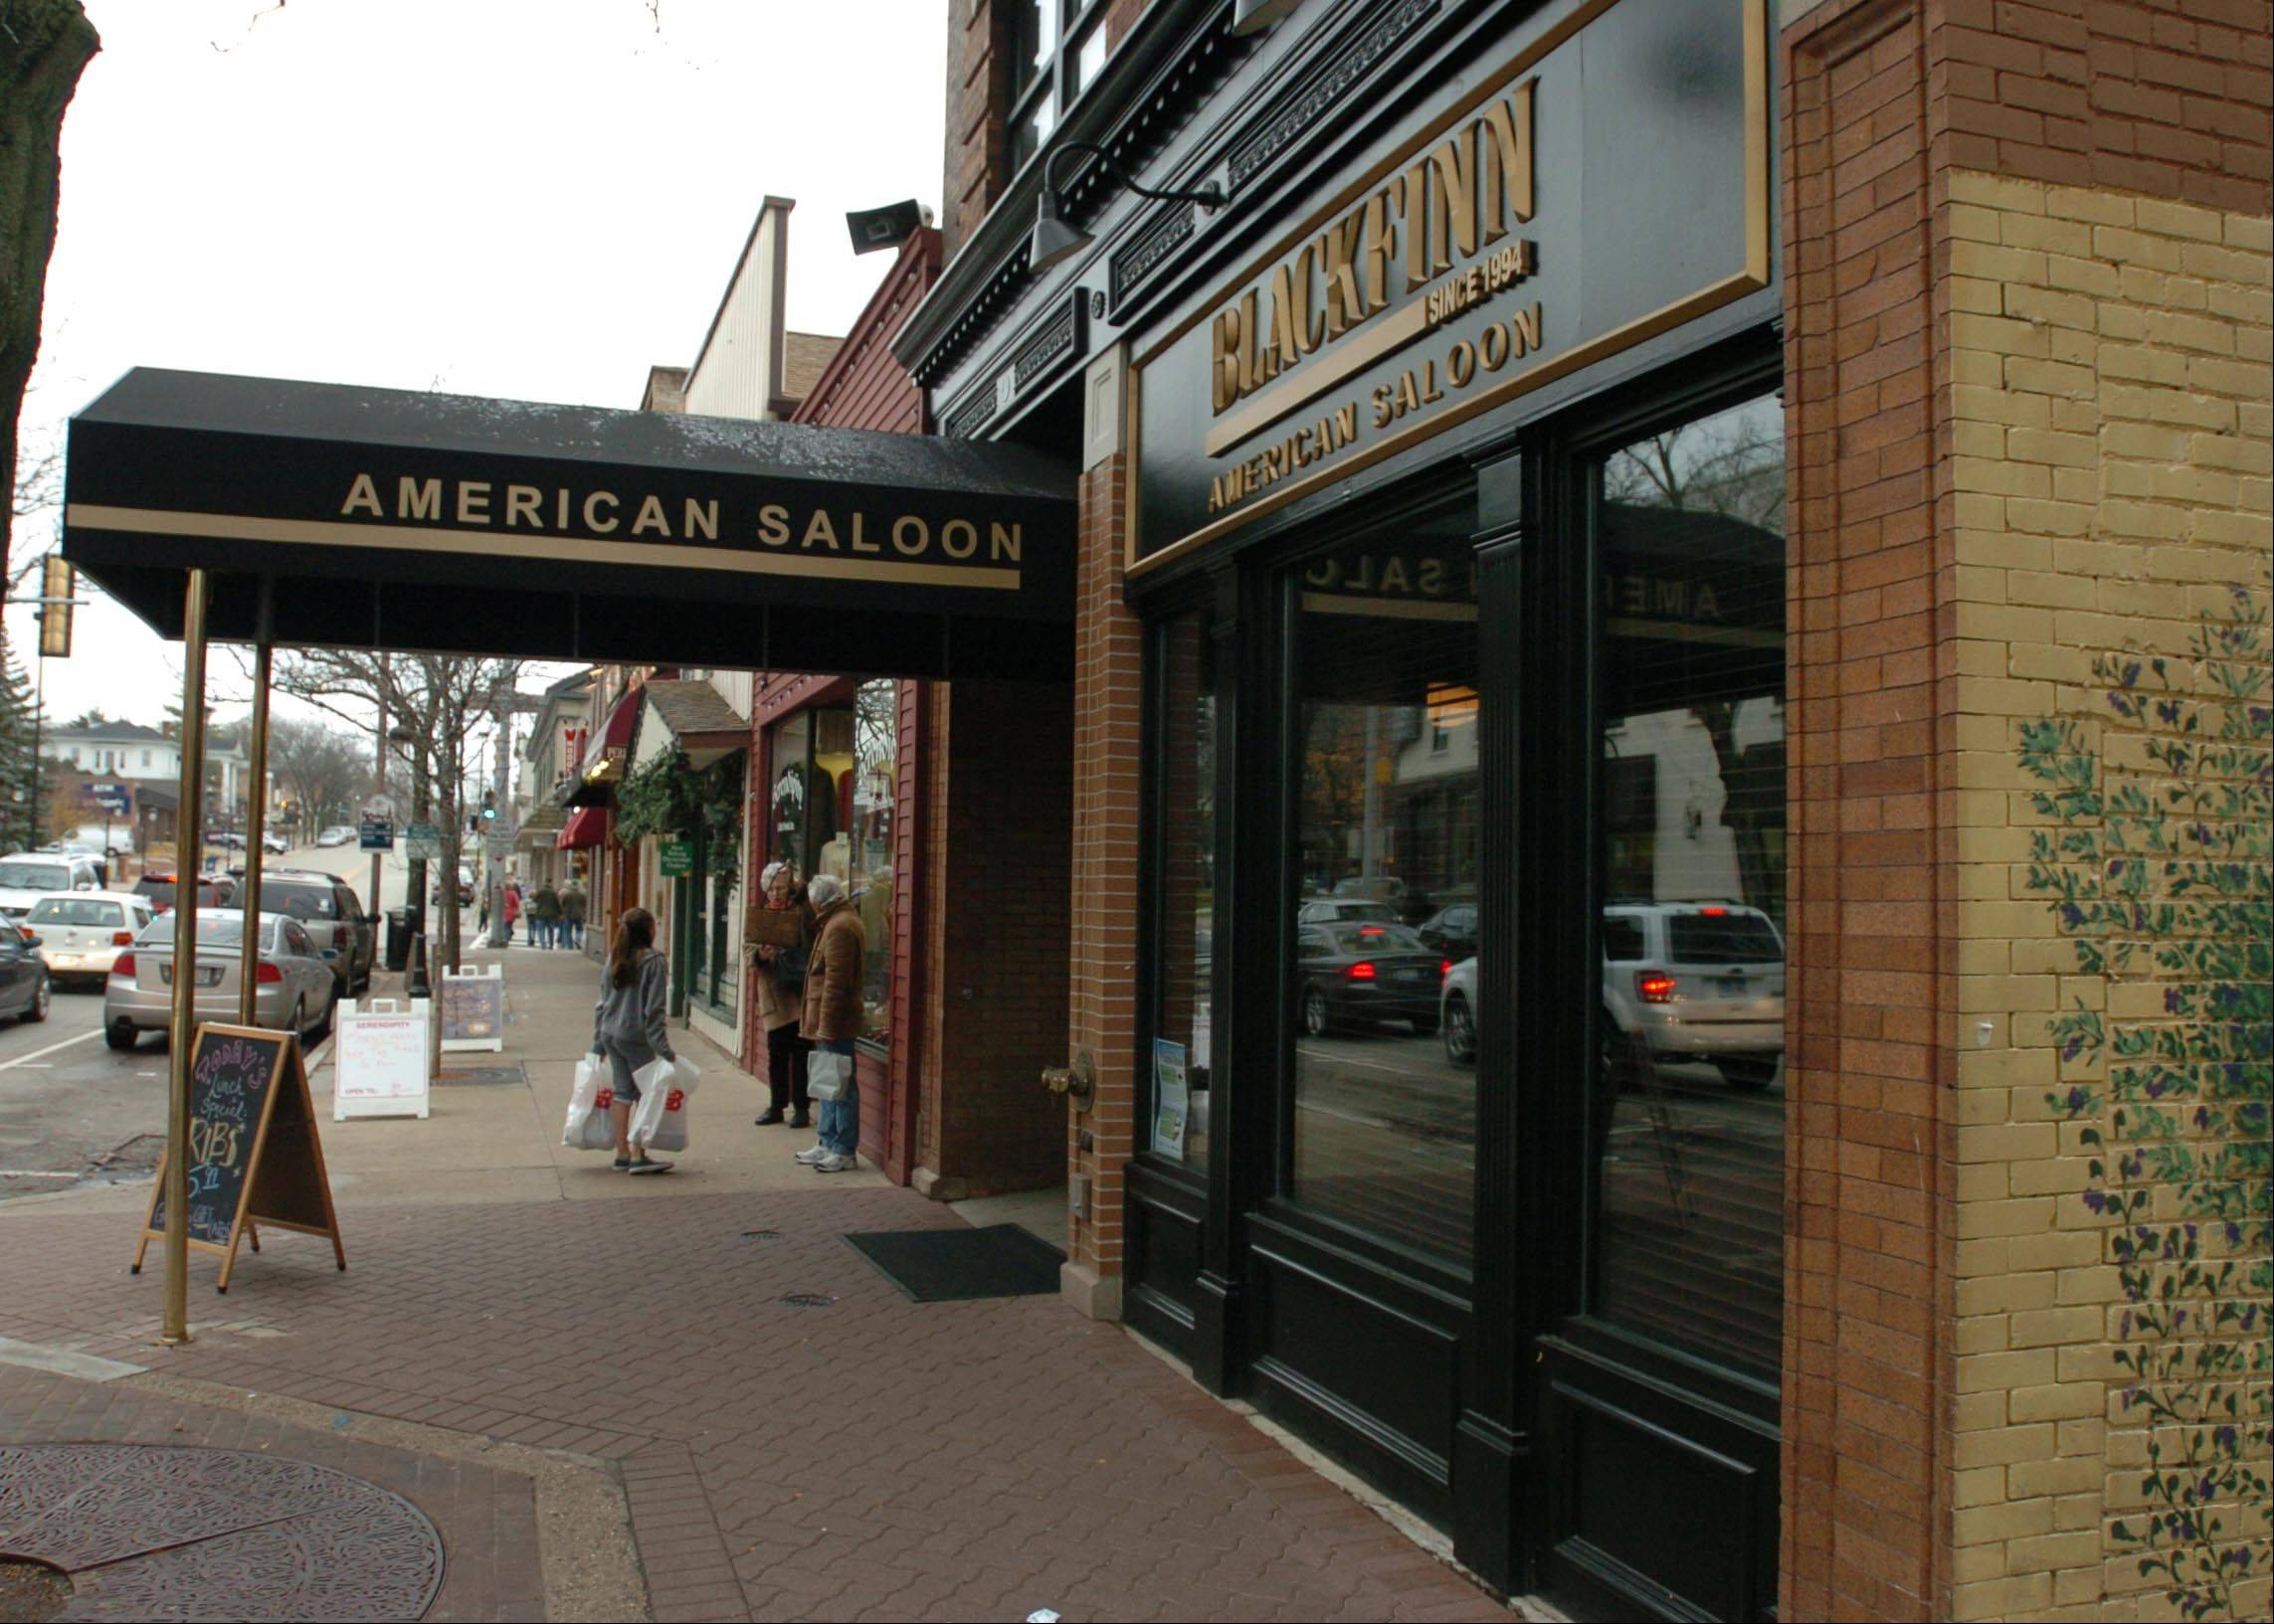 BlackFinn American Saloon's late-night liquor permit was reinstated Monday, allowing the bar to resume serving alcohol until 1 a.m. during the week and 2 a.m. on the weekends.